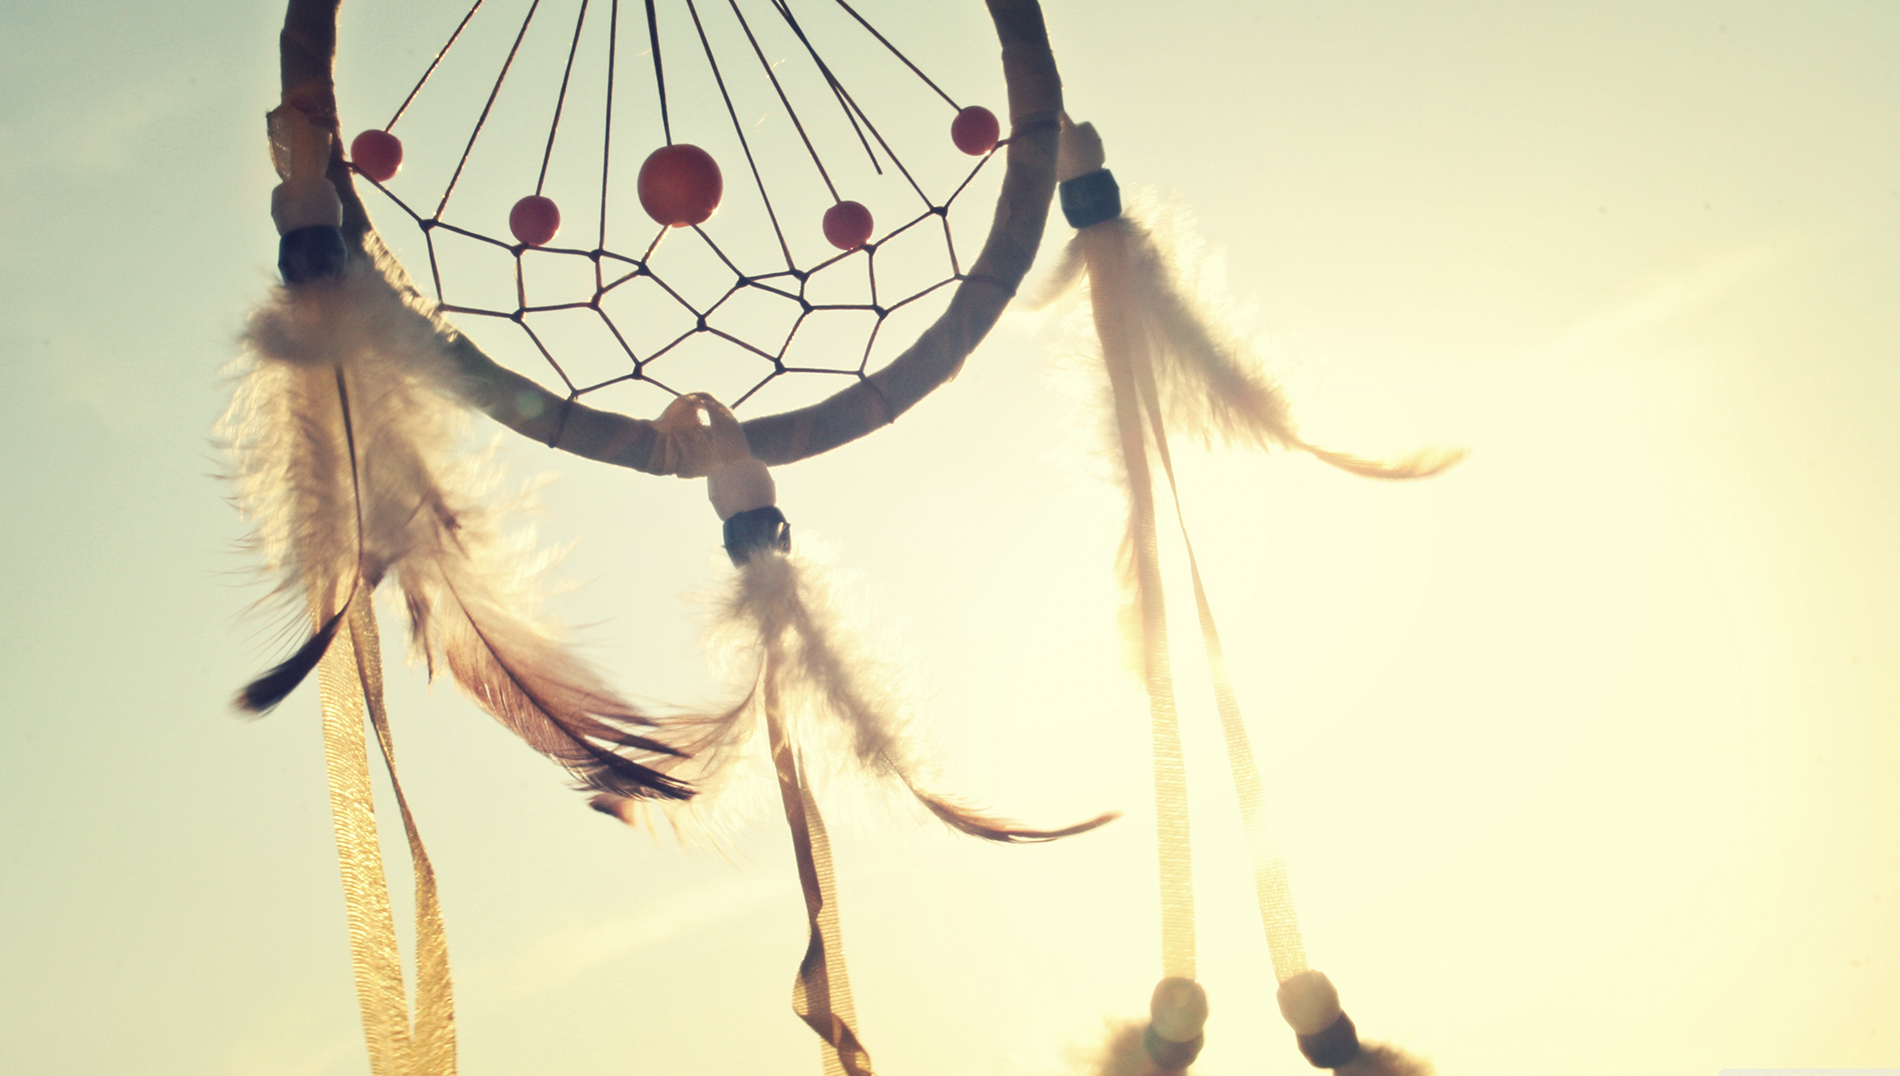 dreamcatcher peacelovedesign image via unsplash.com